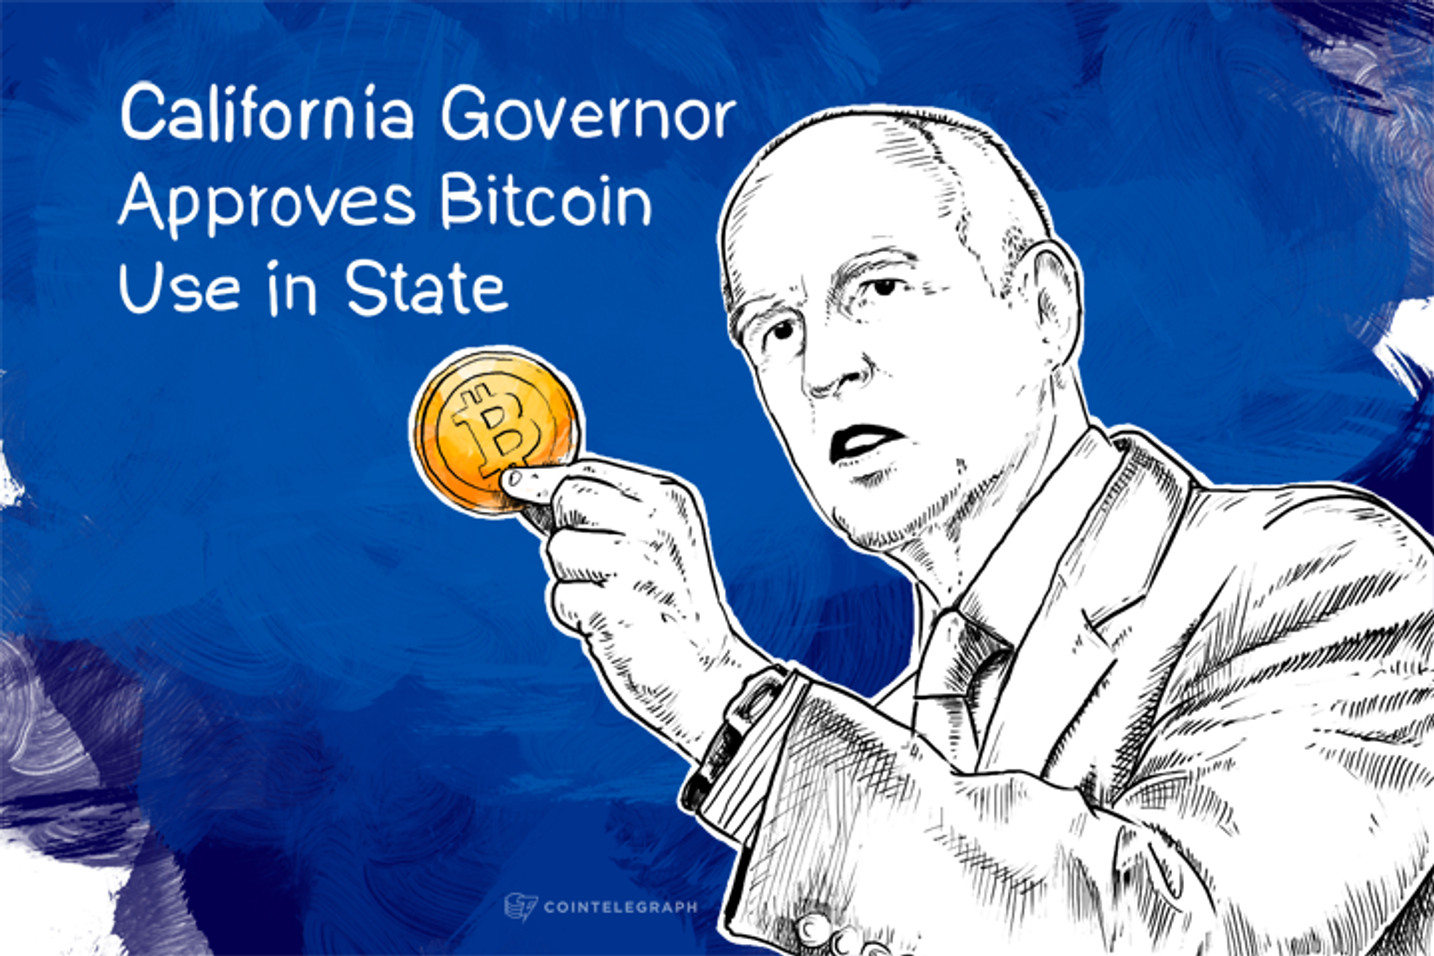 California Governor Approves Bitcoin Use in State